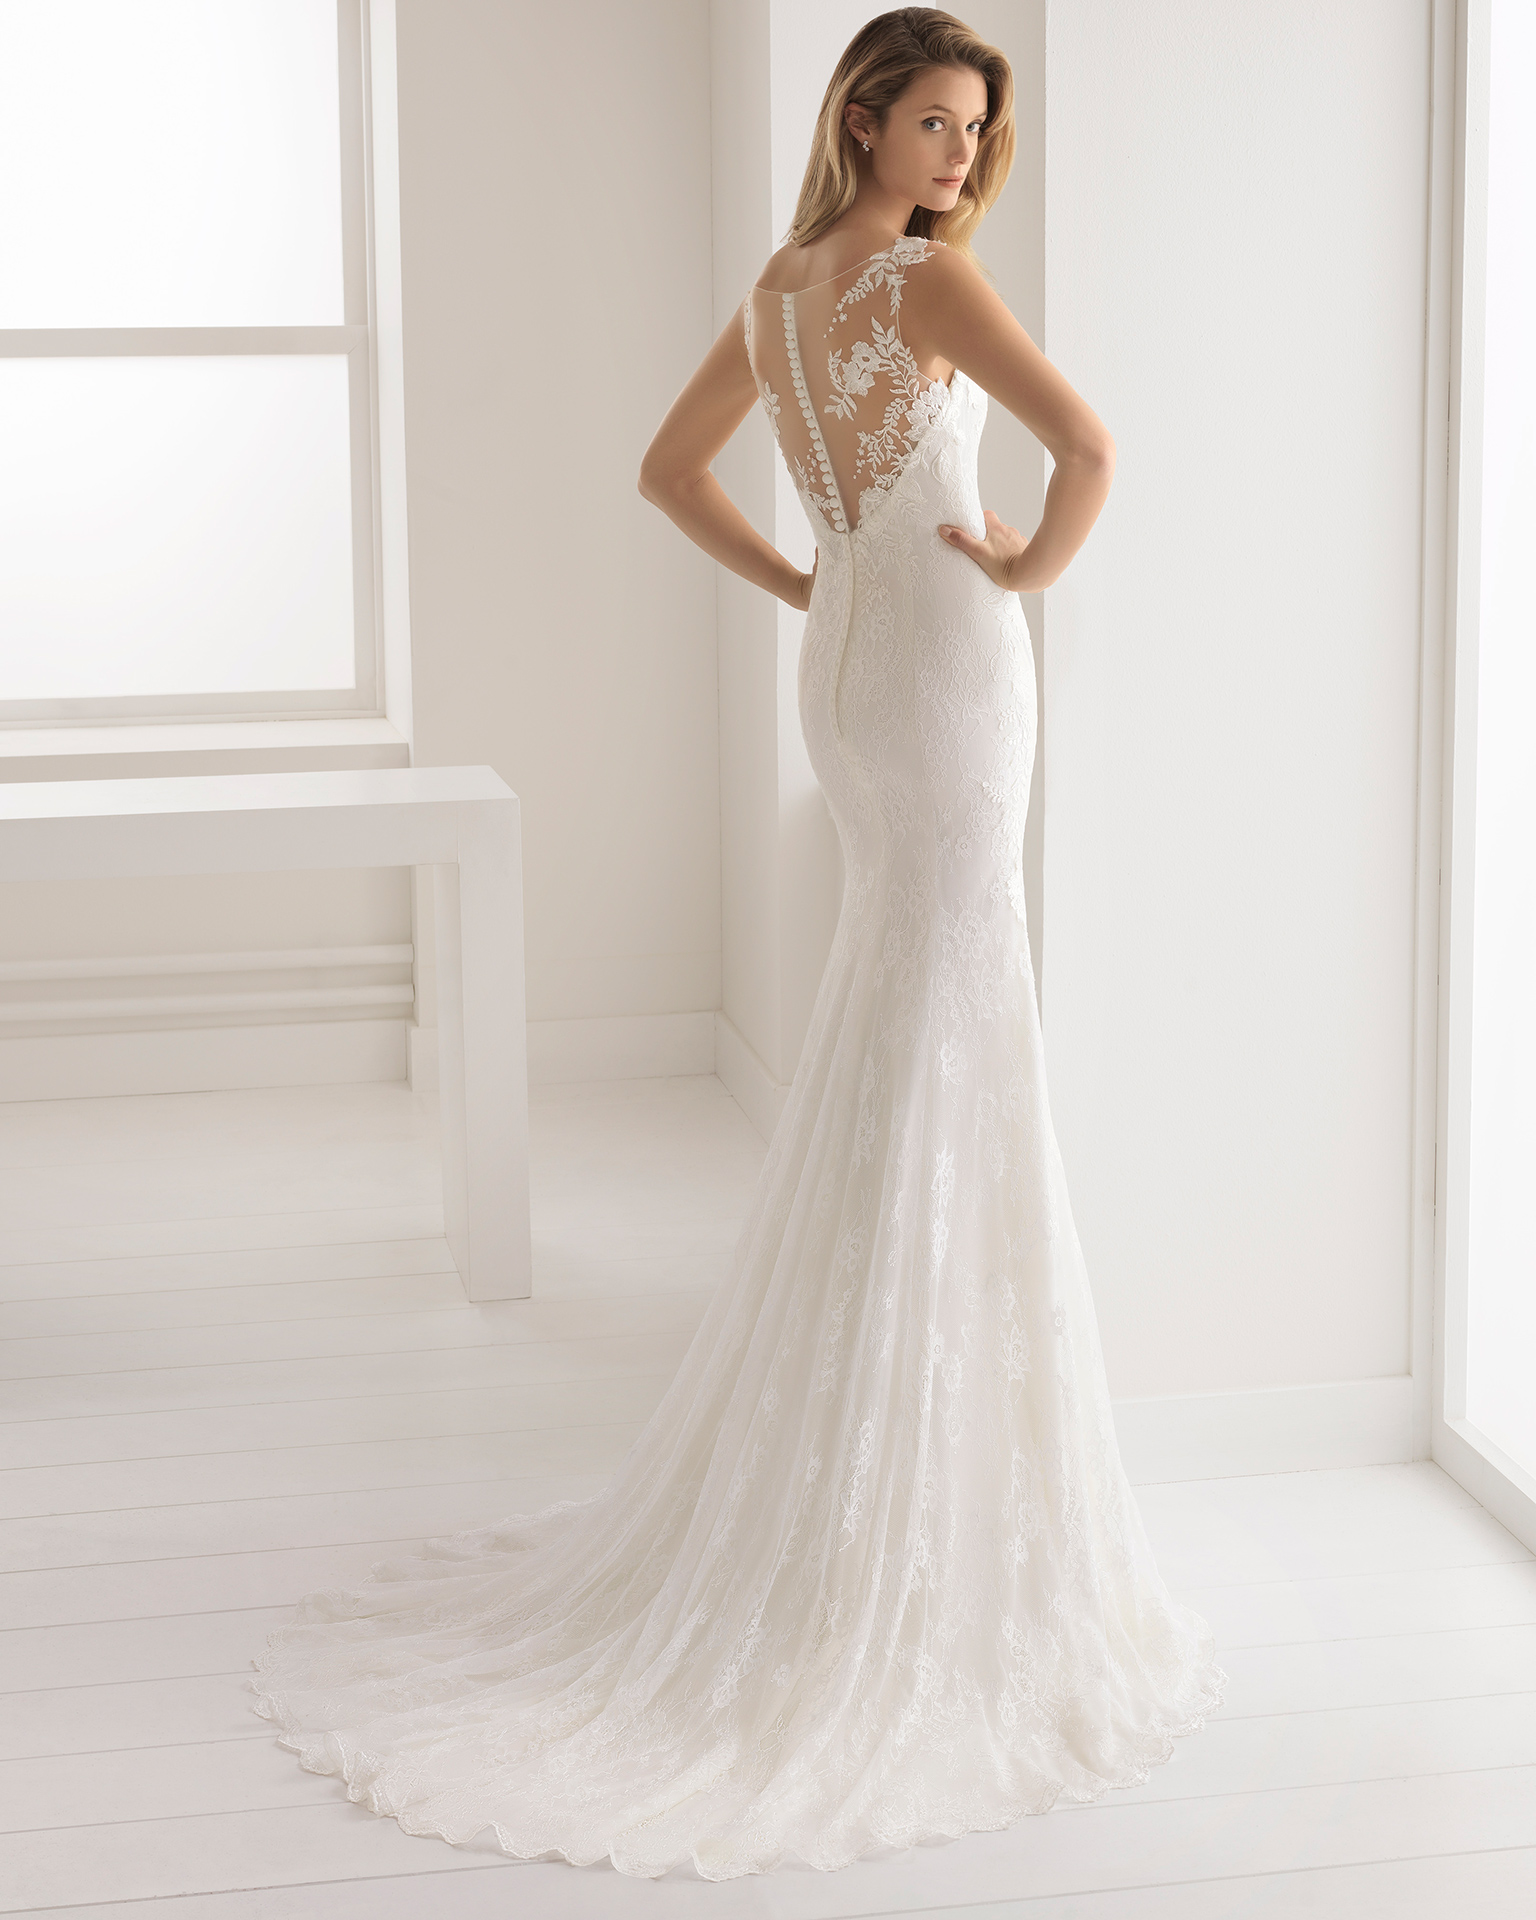 Mermaid-style beaded lace and crepe wedding dress with V-neckline and low back.